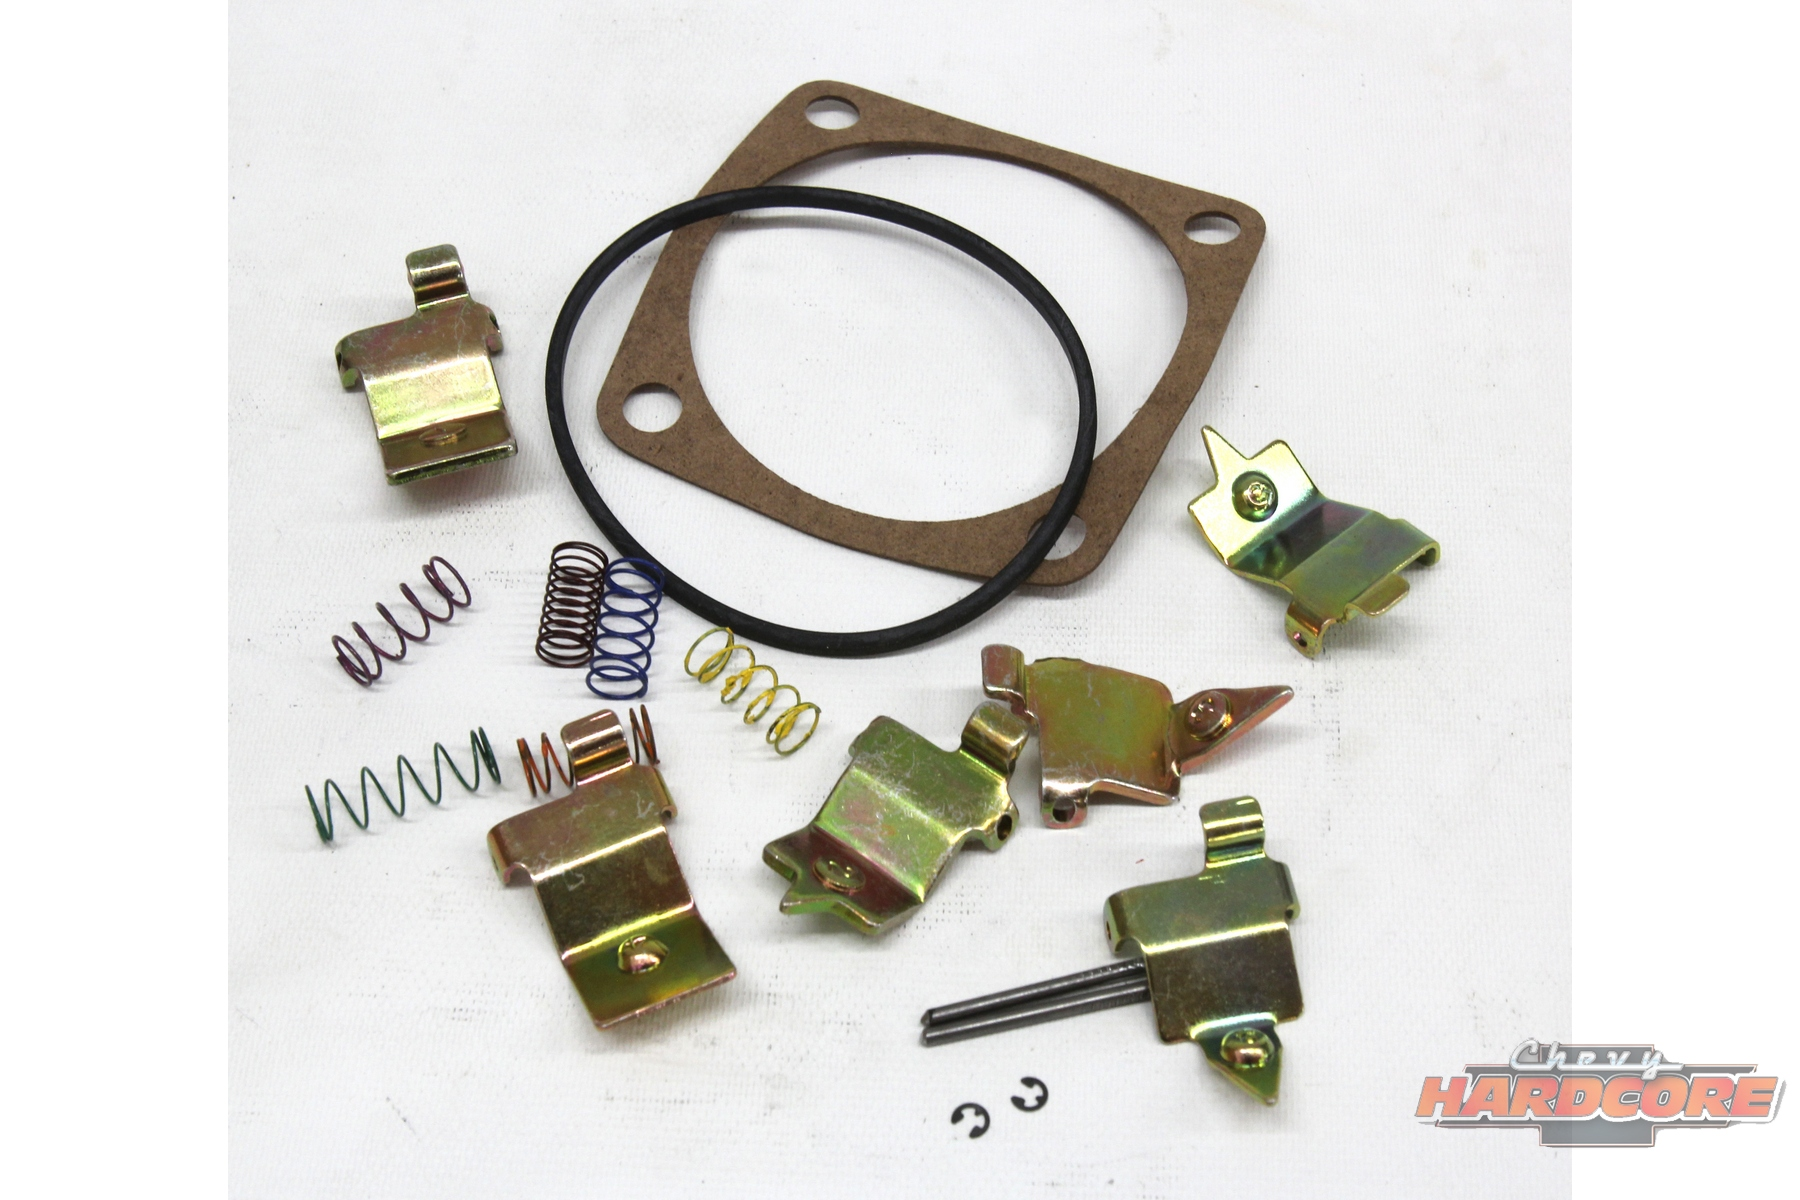 hight resolution of to set the wot up shift rpm on the 700r4 you will need a tci kit like this one that offers stiffer springs to bring the shifts in at a later rpm